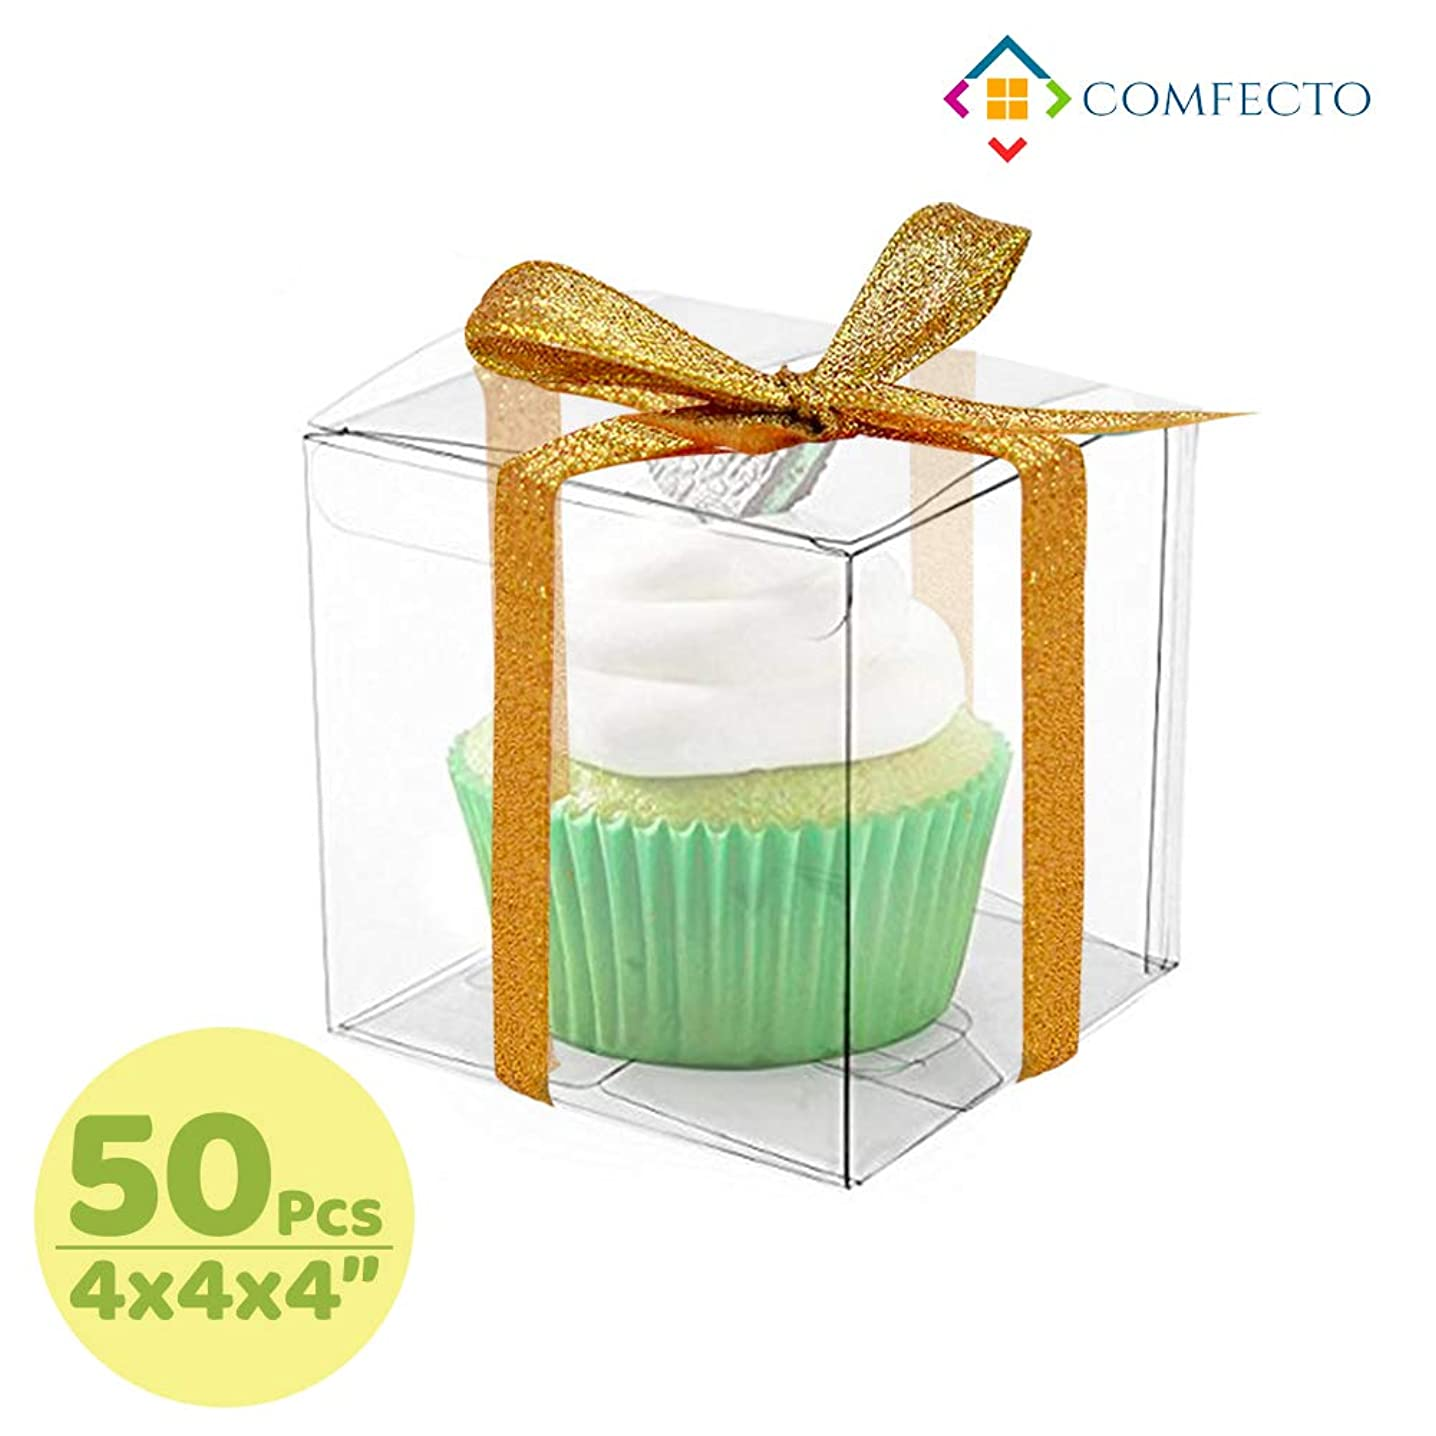 COMFECTO Clear Boxes for Favors 4x4x4, 50 pcs Transparent Giftbox for Macaron Cupcake Candy Cookies Ornament GiftsWedding Party Baby Shower, Single Individual Packaging for Display